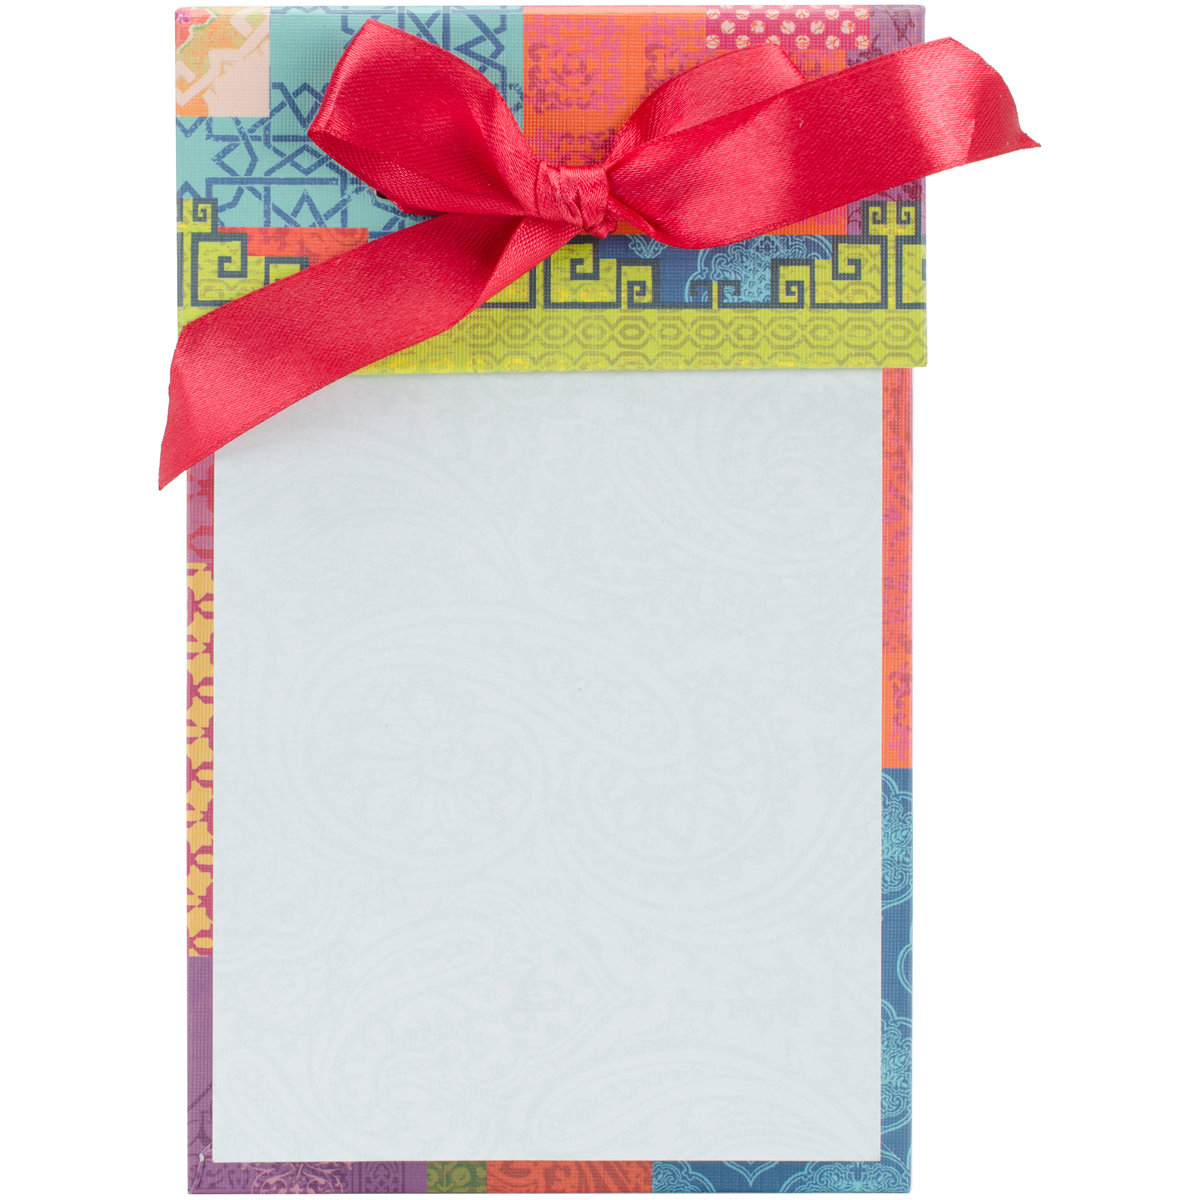 "Ribbon Note Pad 4.25""X6.75"" 100 Pages-Potpourri"